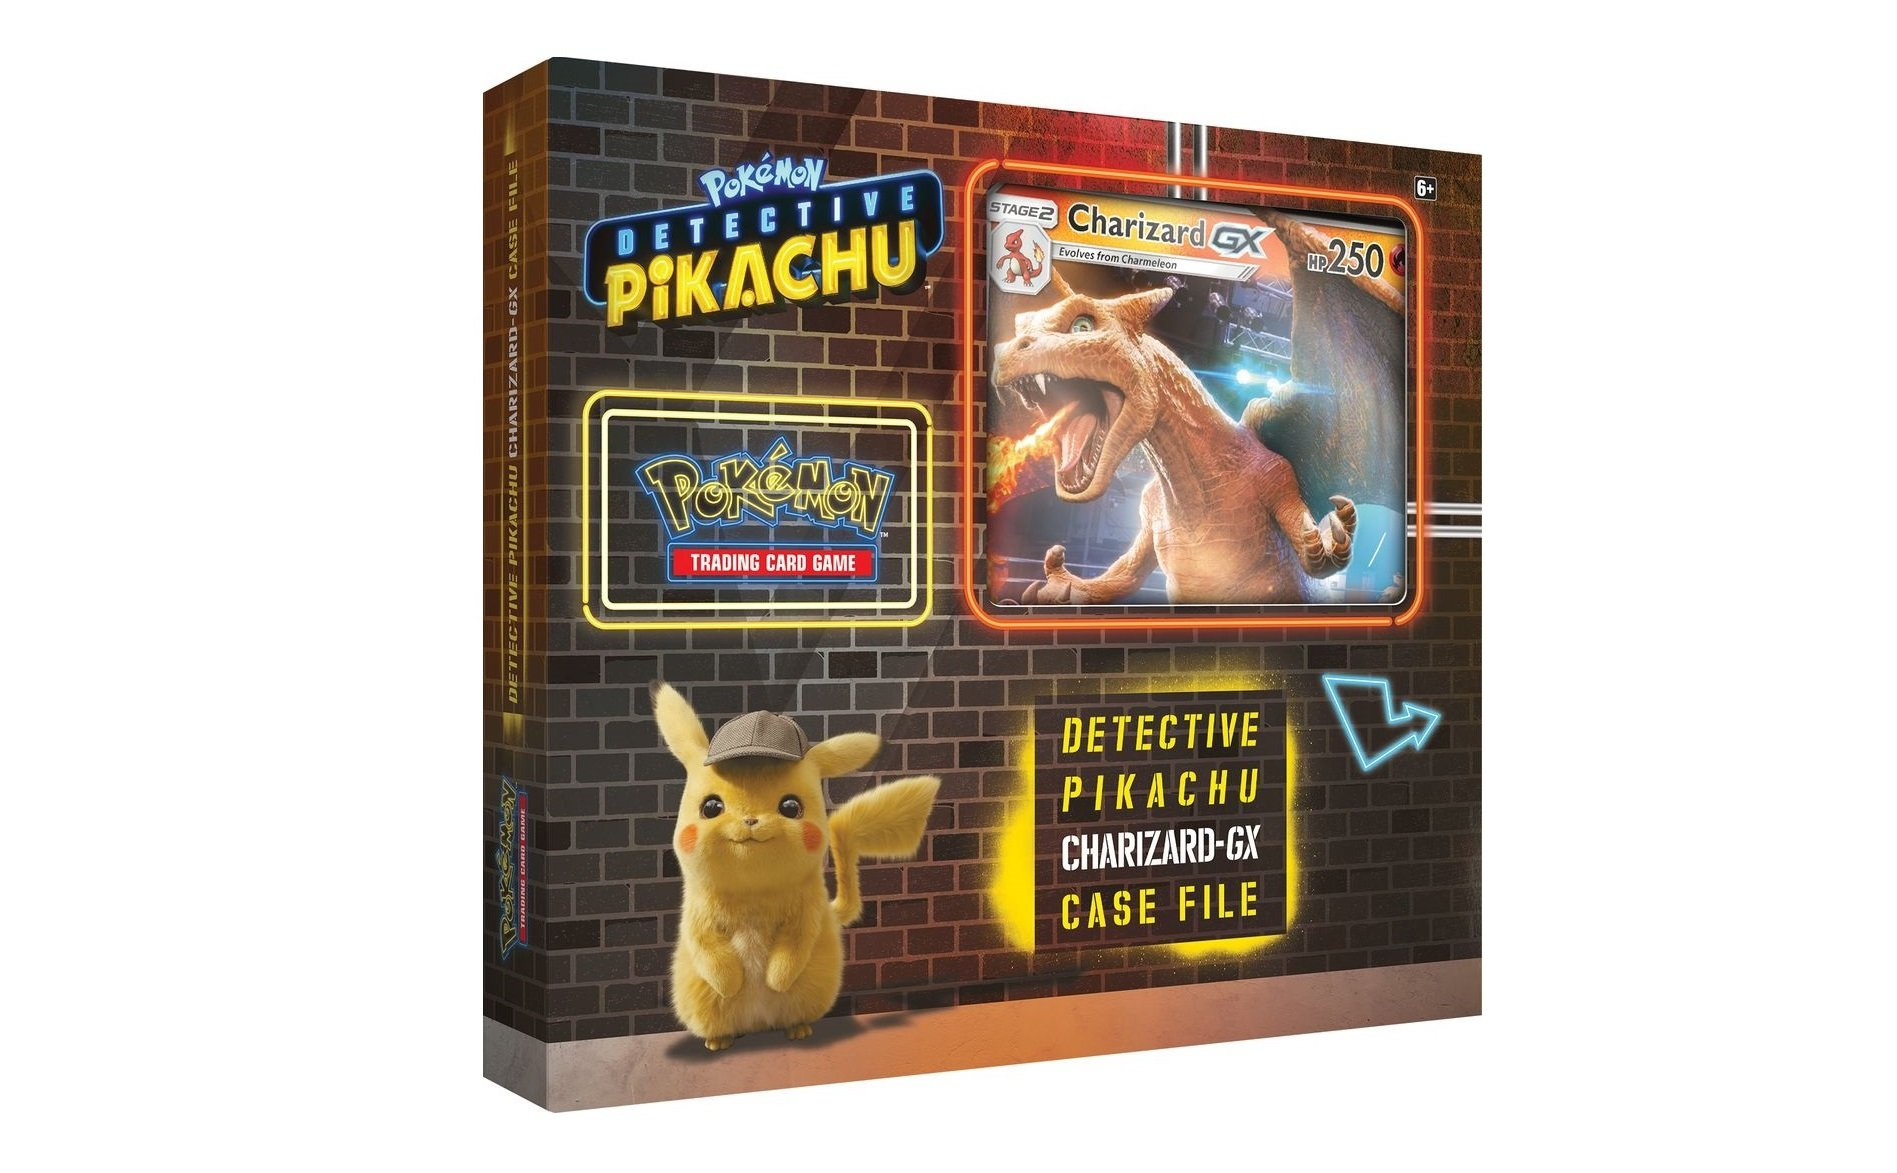 An exclusive Detective Pikachu trading card set will release this April. © The Pokémon Company